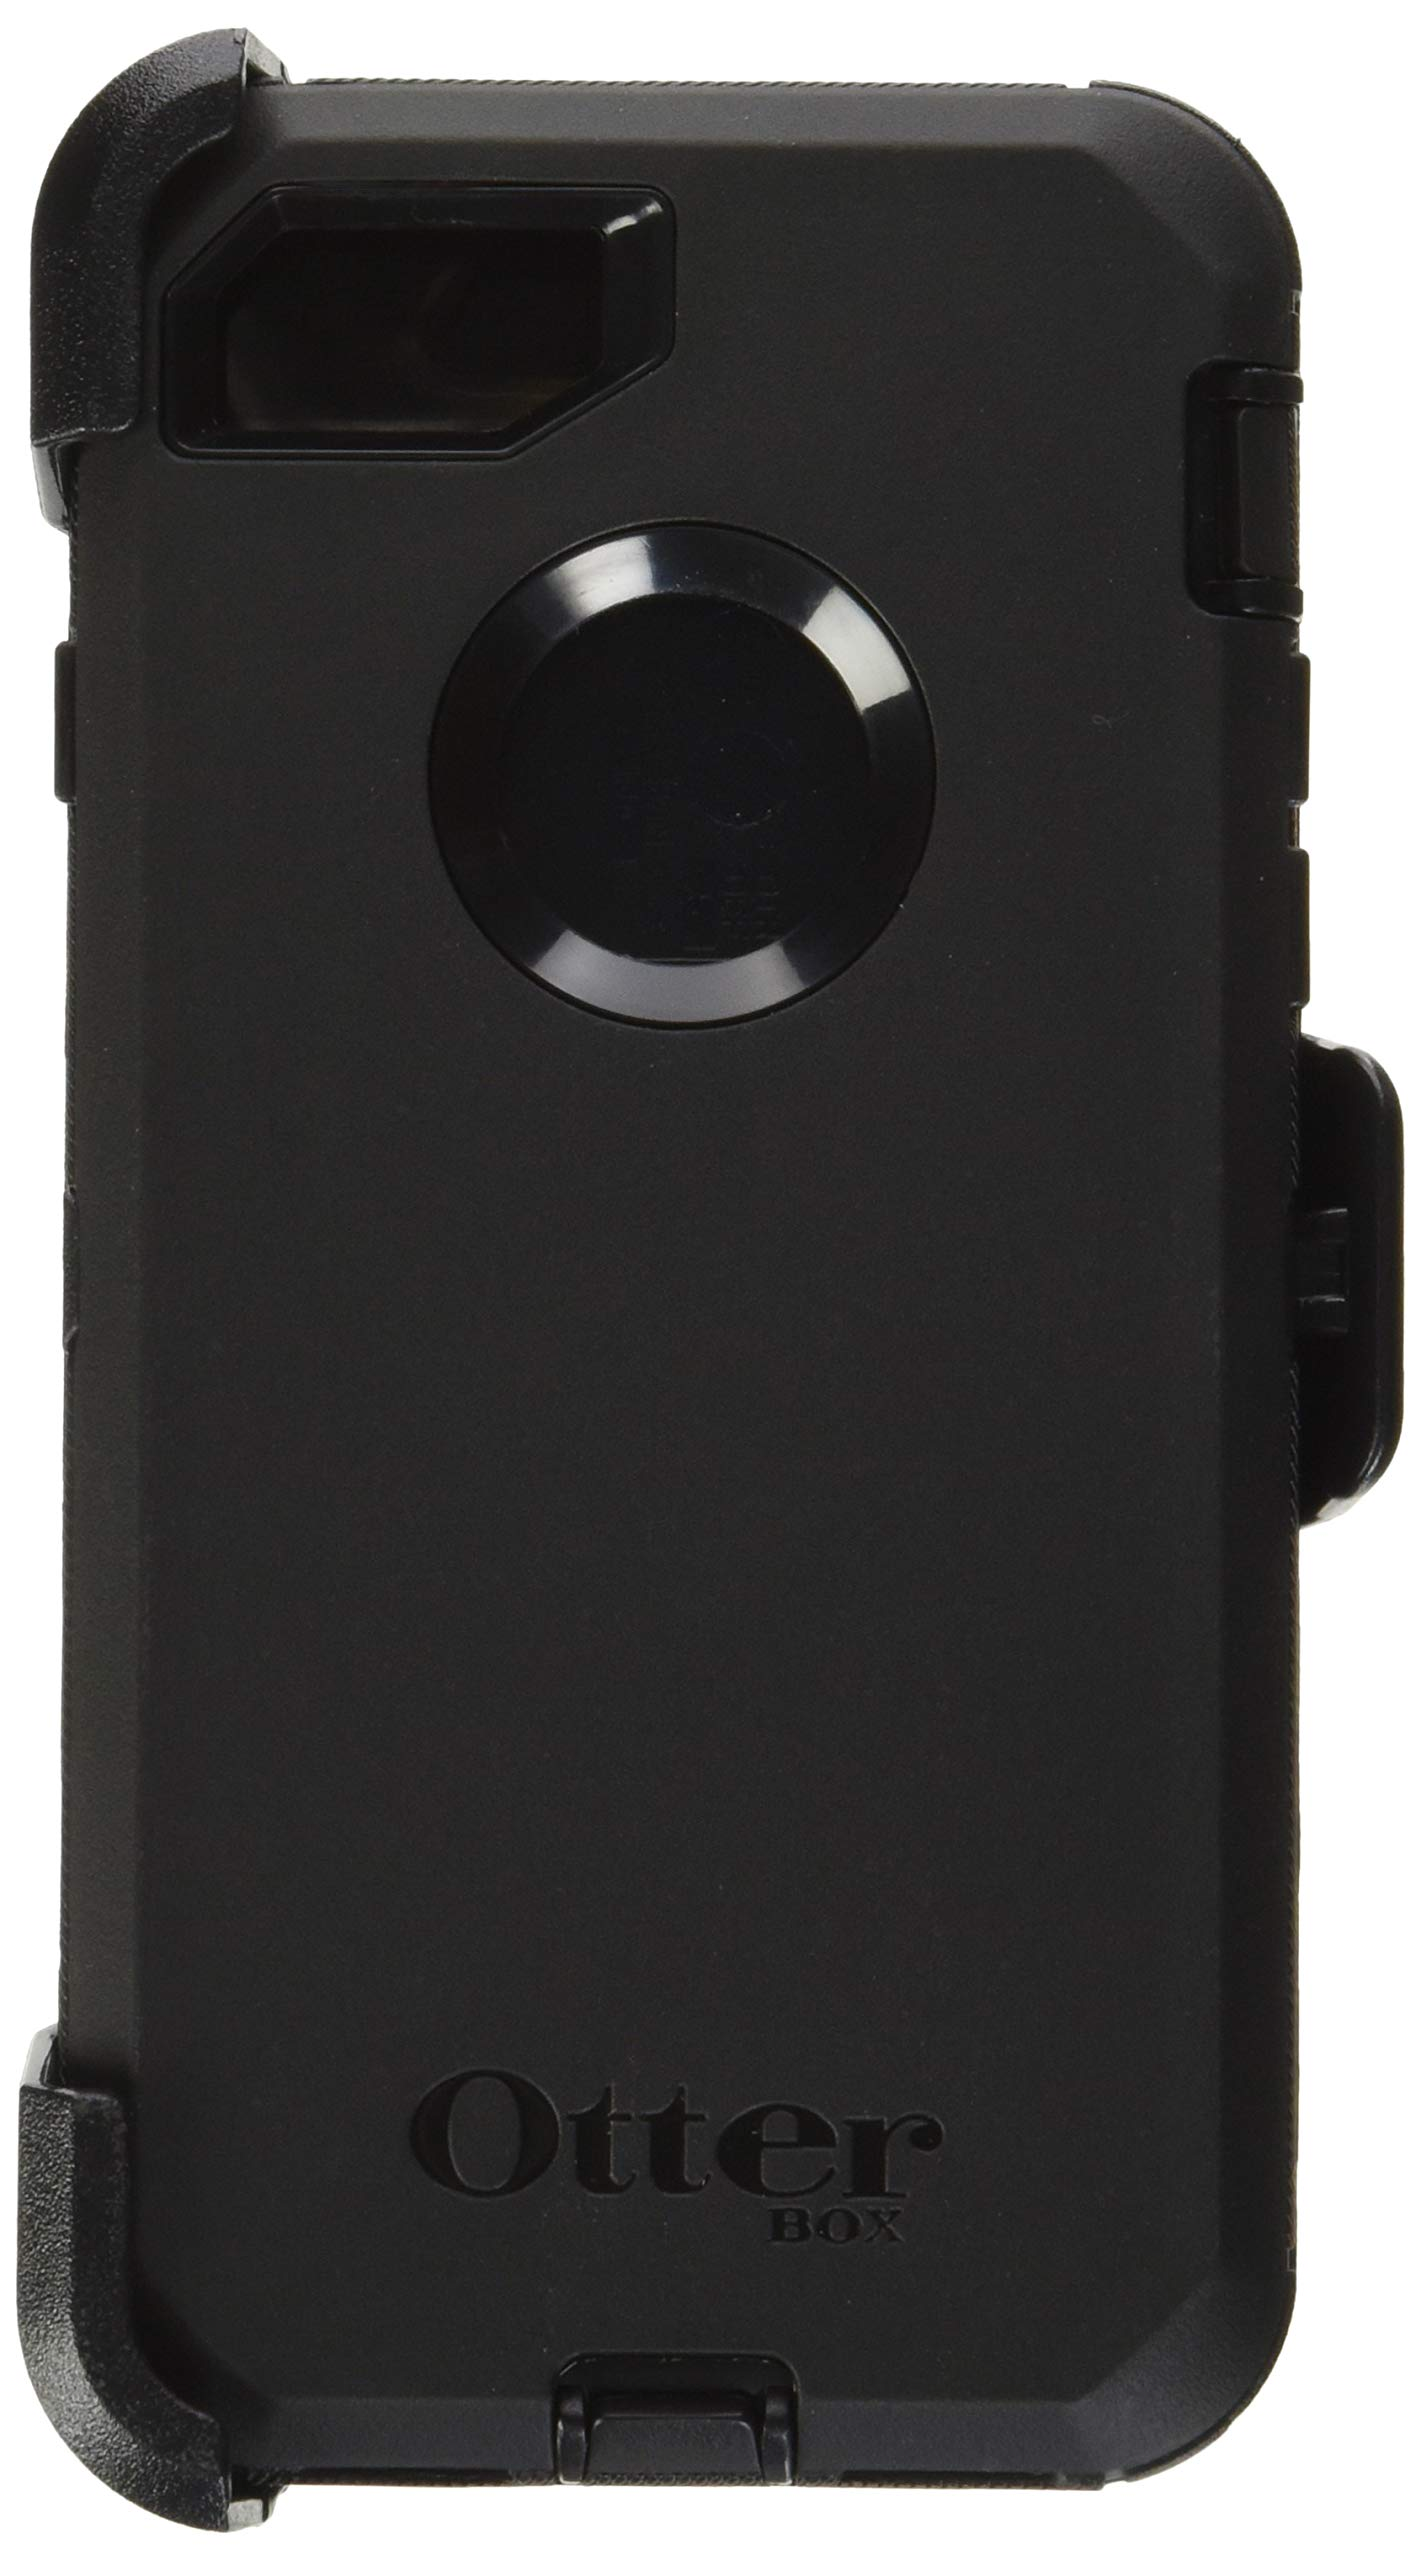 OtterBox DEFENDER SERIES Case for iPhone 8 & iPhone 7 (NOT Plus) - 71H4UOeWhlL - OtterBox DEFENDER SERIES Case for iPhone 8 & iPhone 7 (NOT Plus)